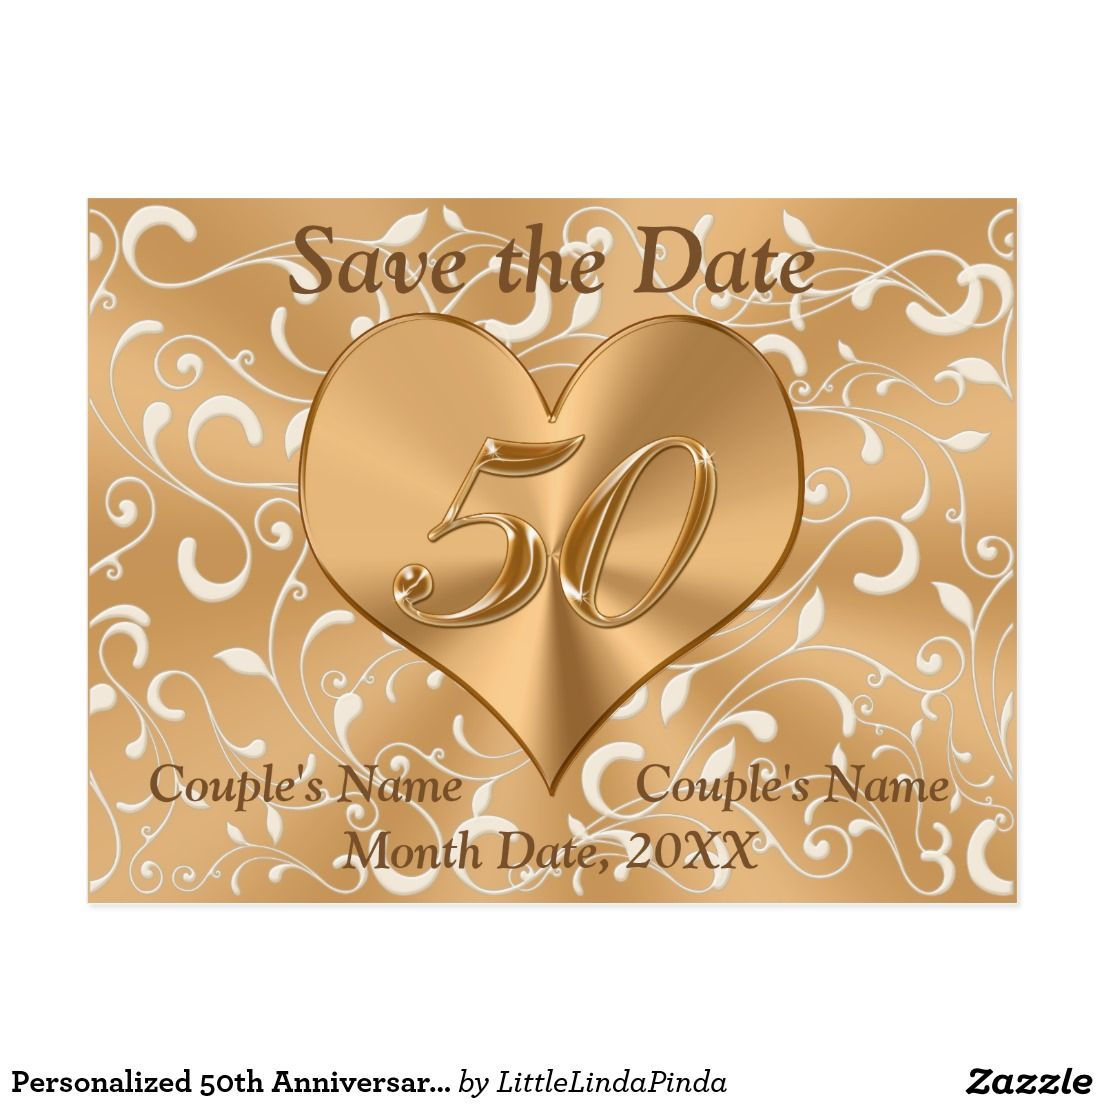 Personalized 50th Anniversary Save The Date Cards Wedding